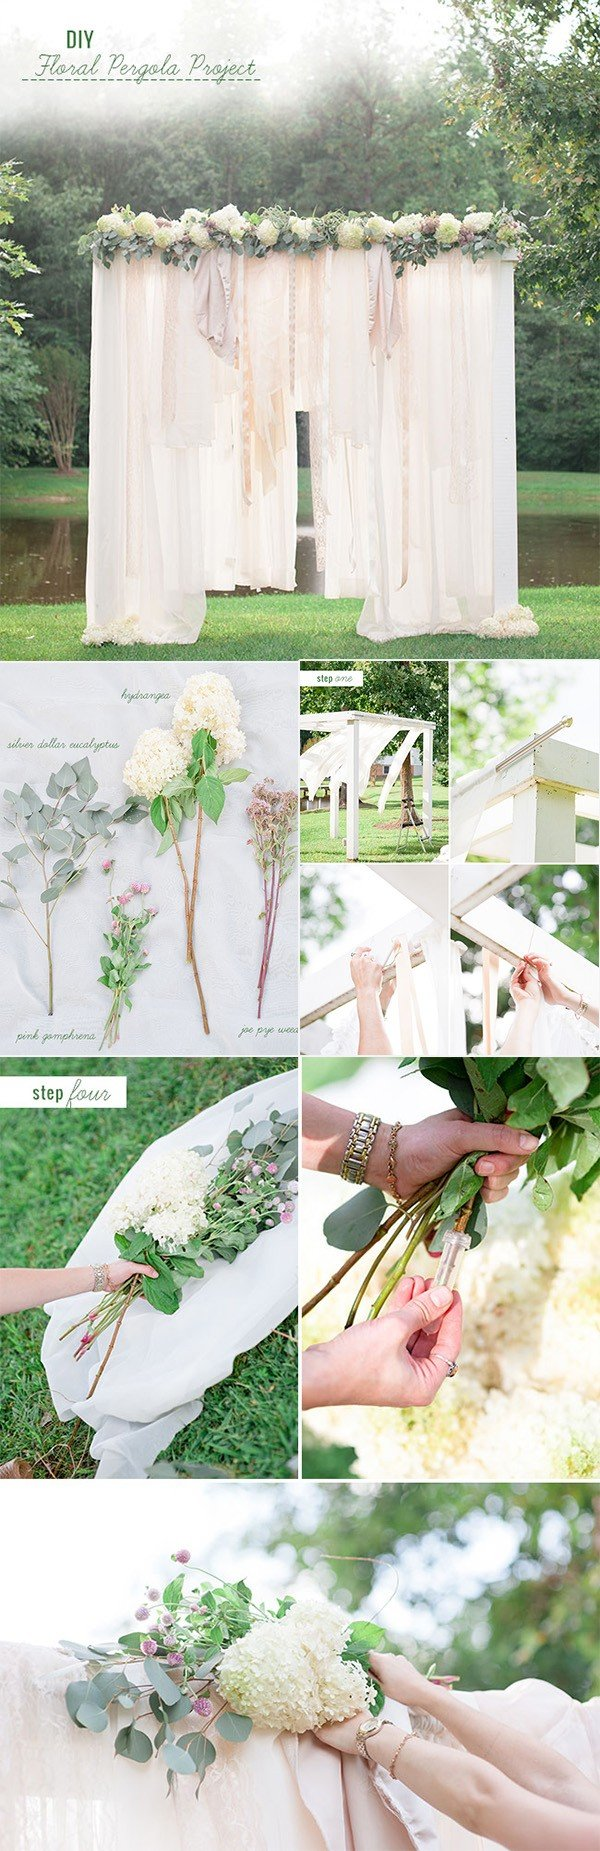 10 Perfect DIY Wedding Ideas on a Budget - Oh Best Day Ever